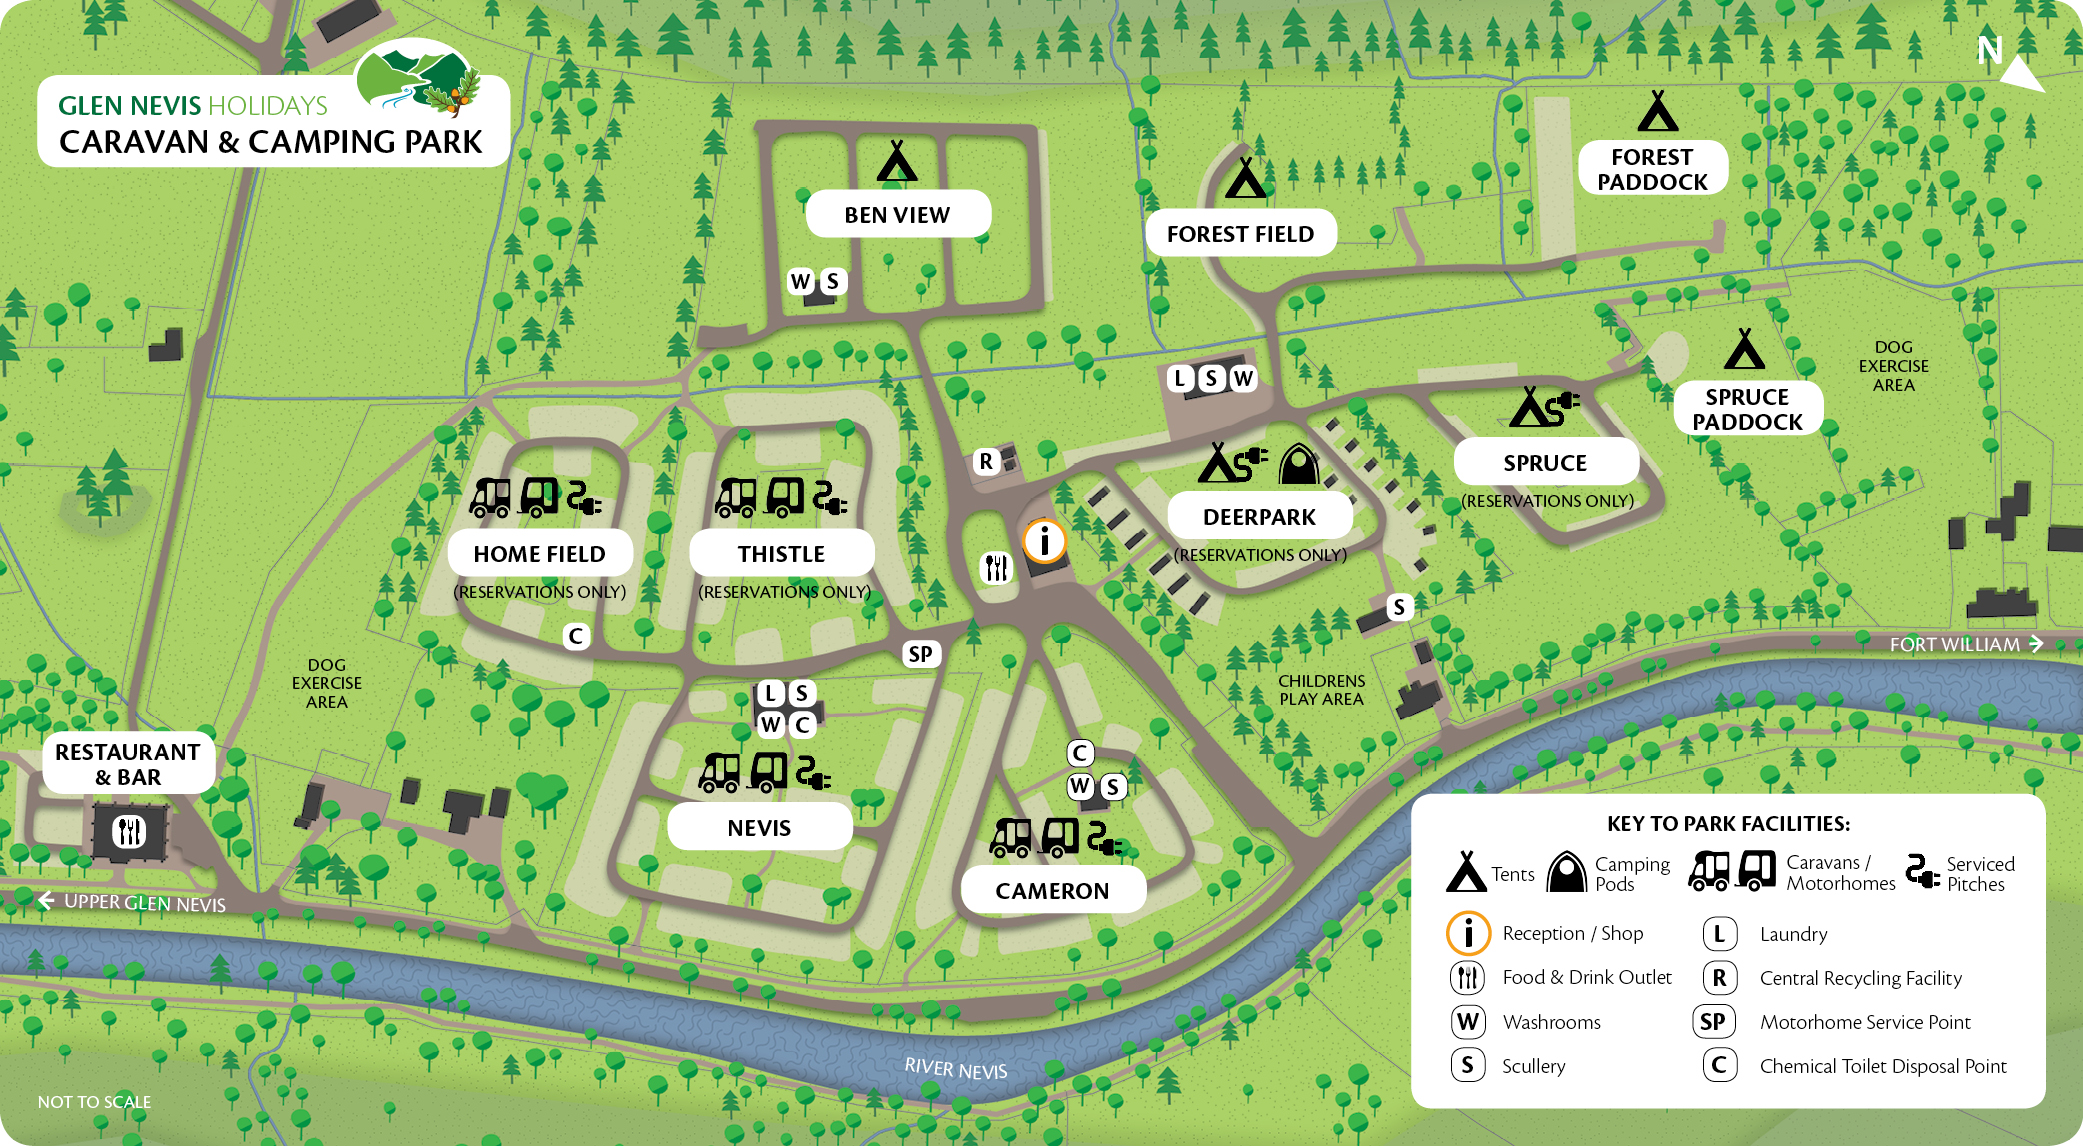 GNH-Map-TouringSite-ForWebsite.jpg